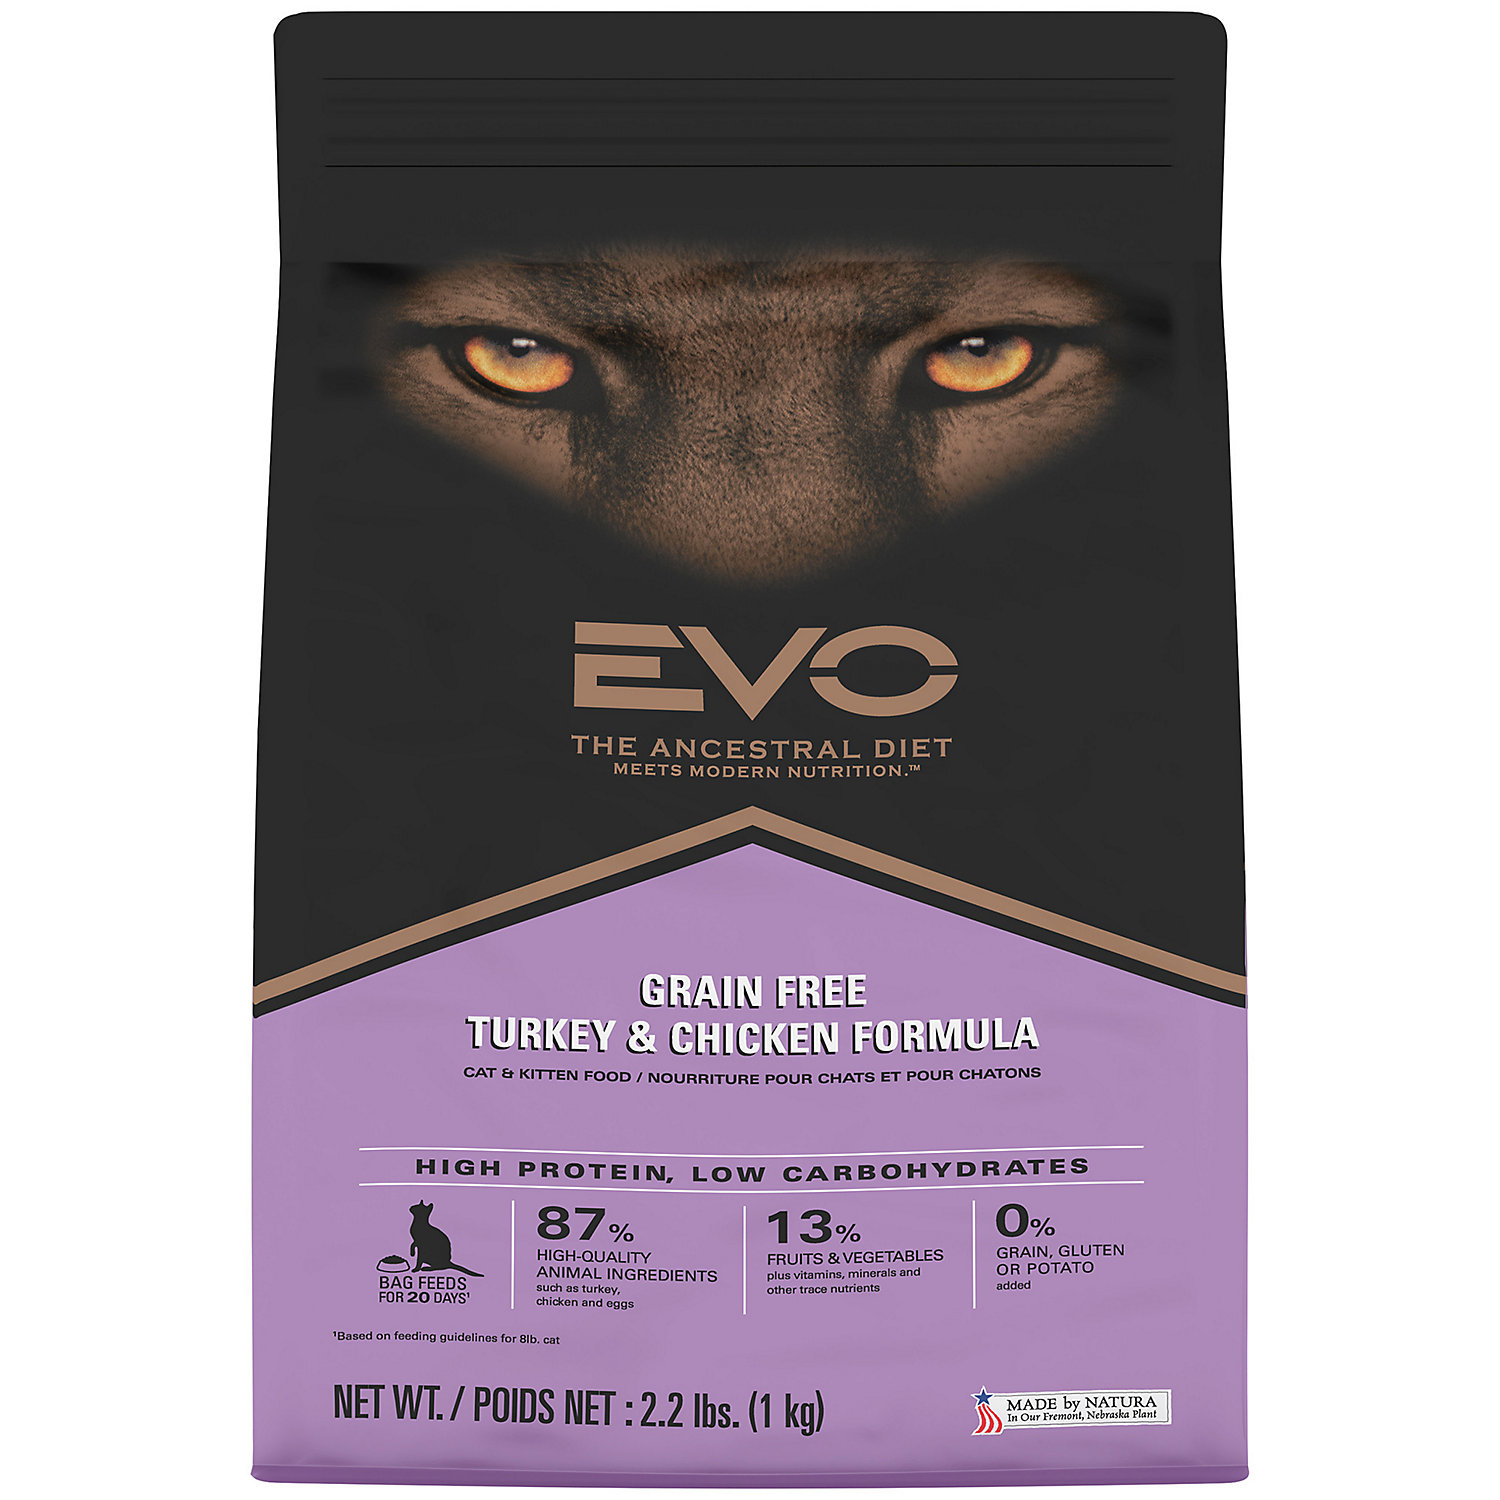 Evo Cat Food Petco